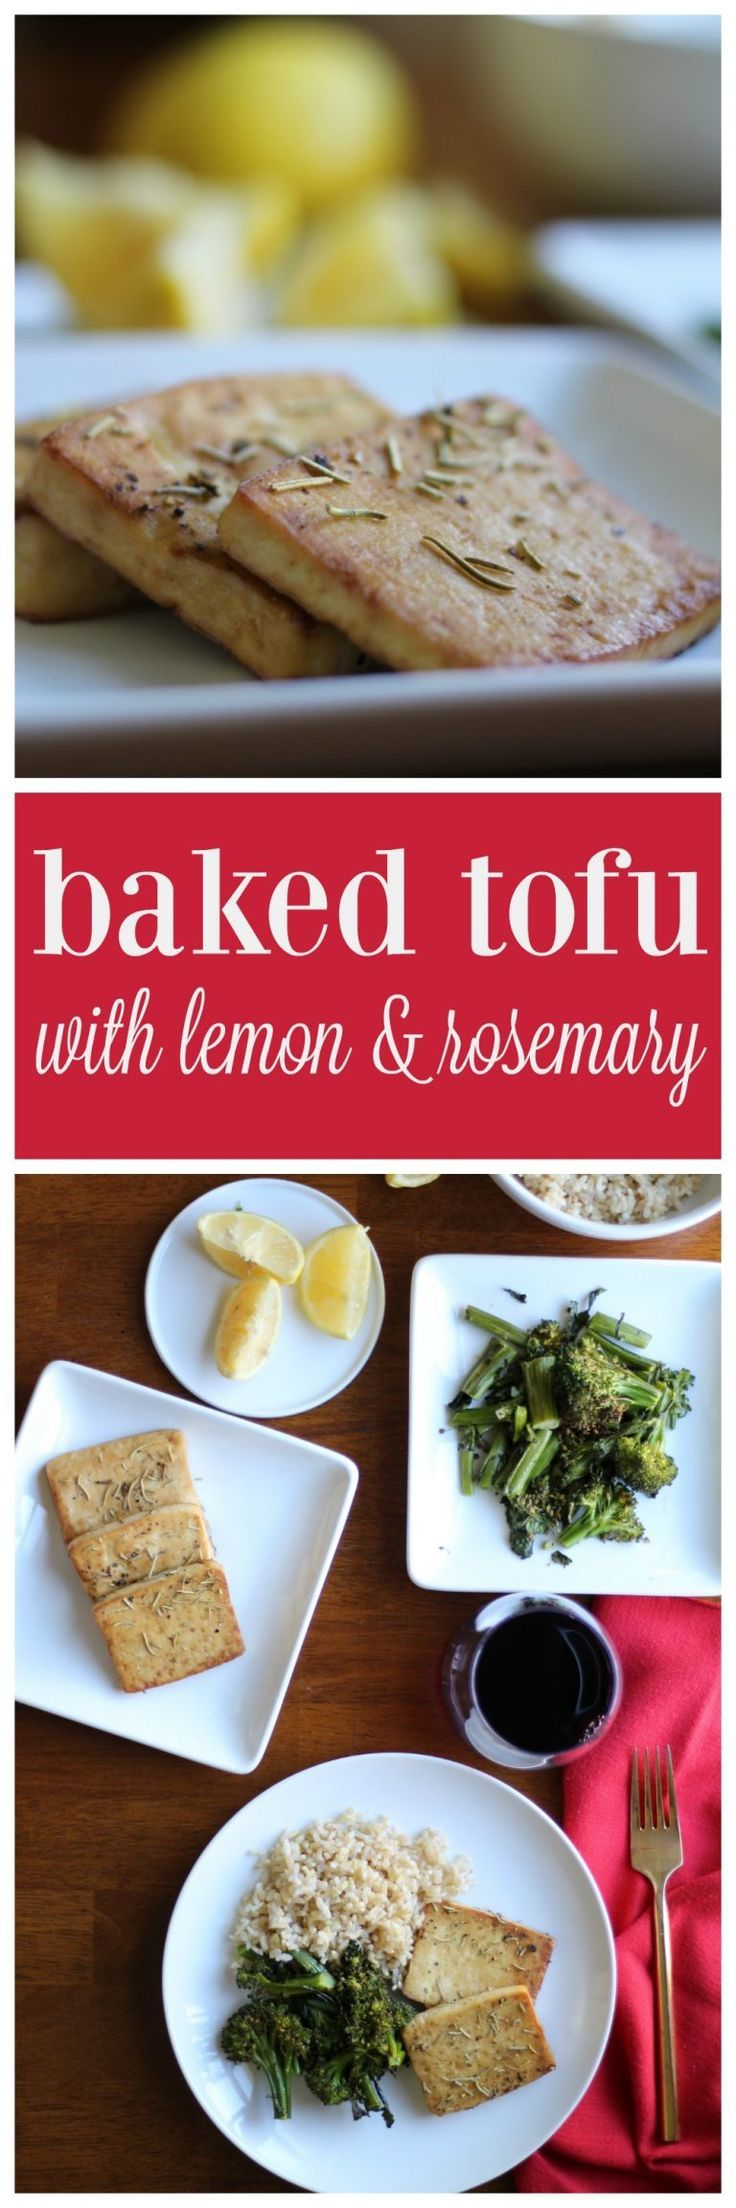 This baked tofu recipe with lemon and rosemary is a cinch to make. It works as a main course with roasted vegetables and rice. It's also delicious cold, straight out of the refrigerator. #vegan #glutenfree #tofu via @cadryskitchen